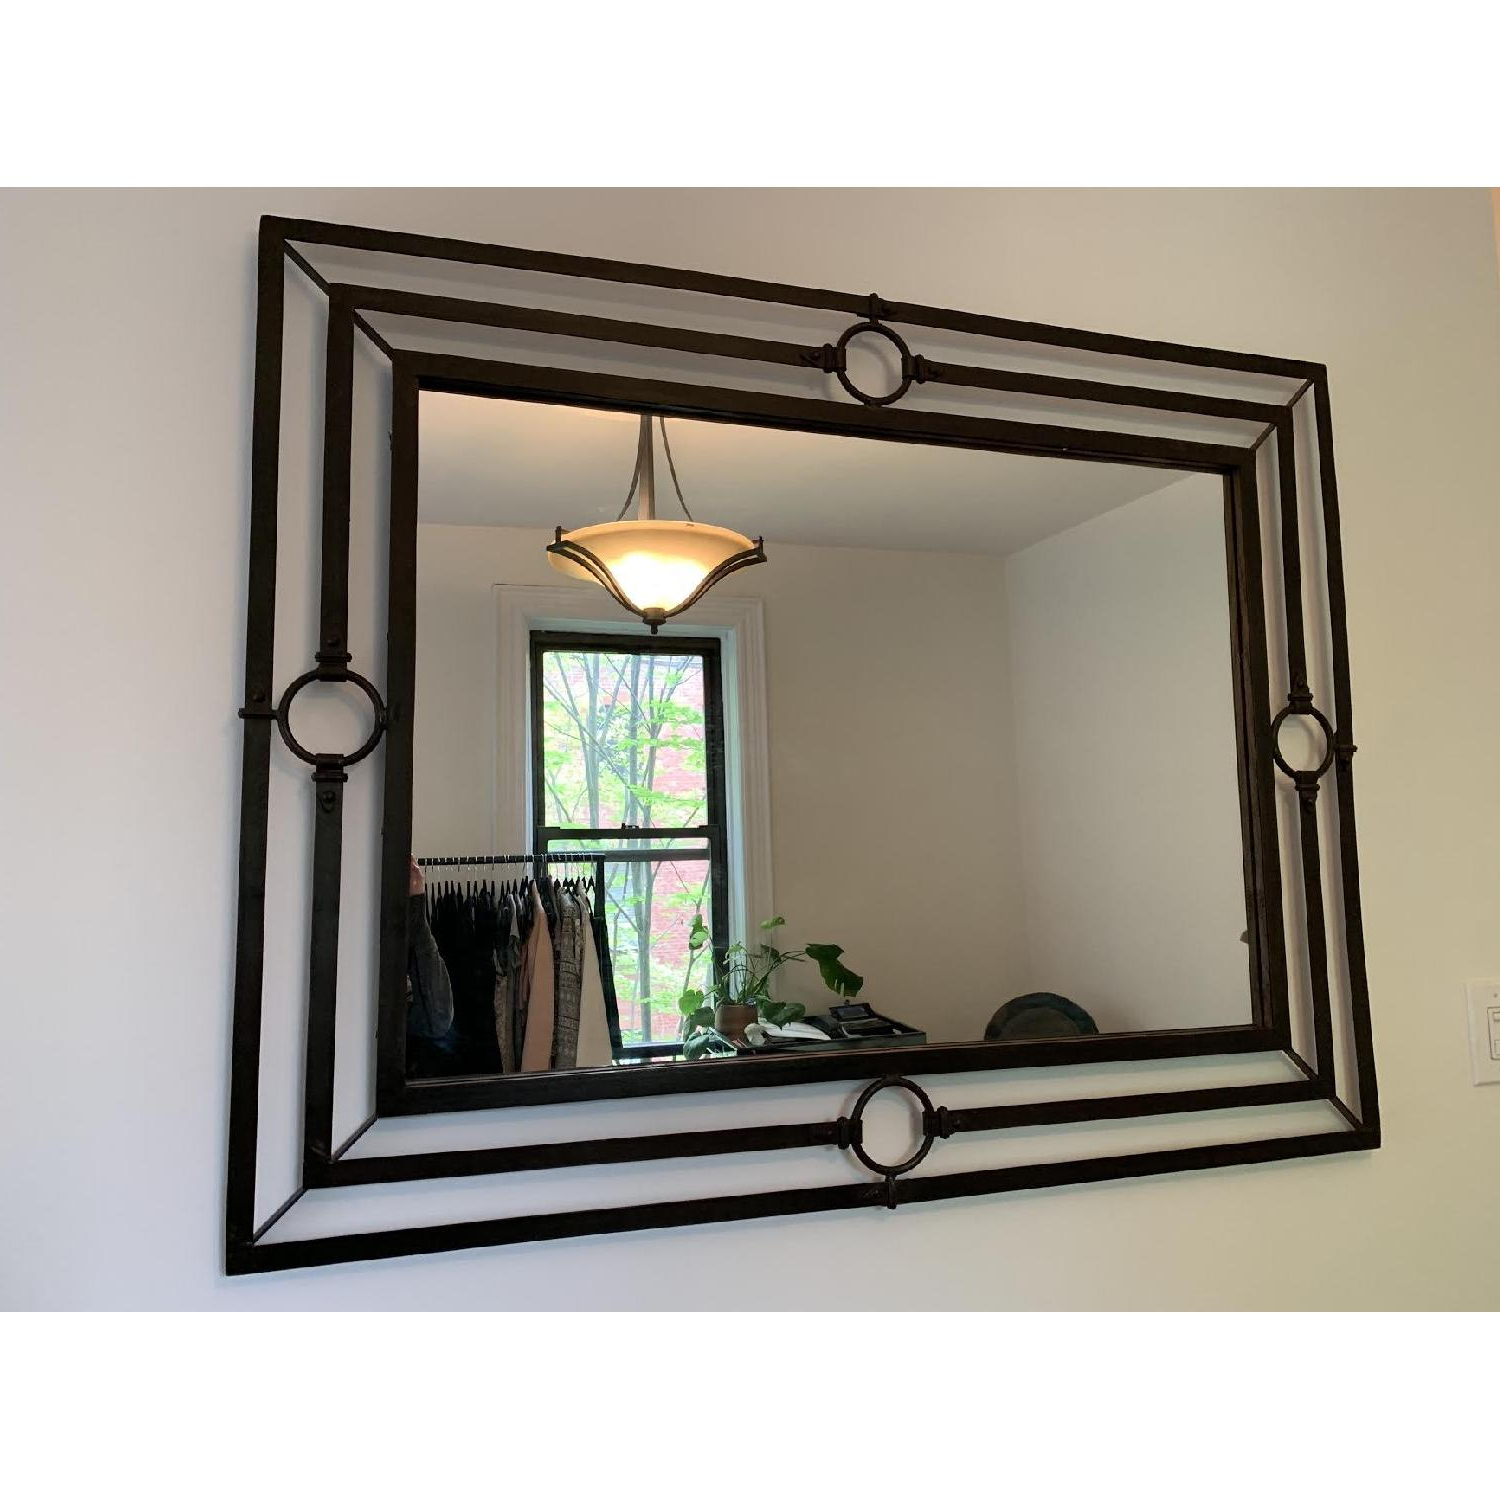 Pottery Barn Wall Mirror For Famous Pottery Barn Wall Mirrors (View 12 of 20)